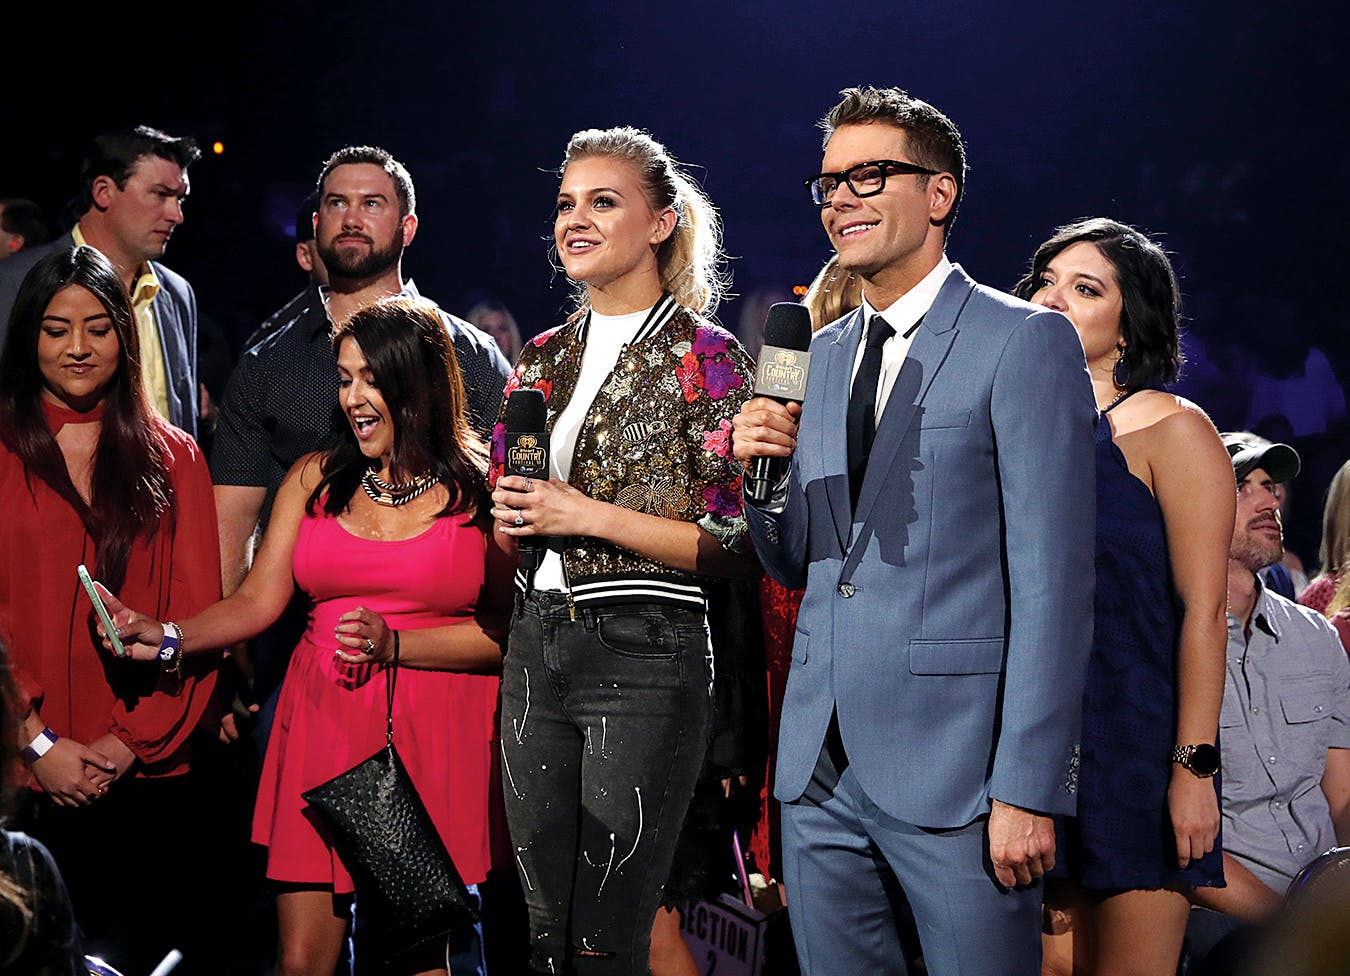 Bones and singer Kelsea Ballerini performing at the 2017 iHeartCountry Festival in Austin.